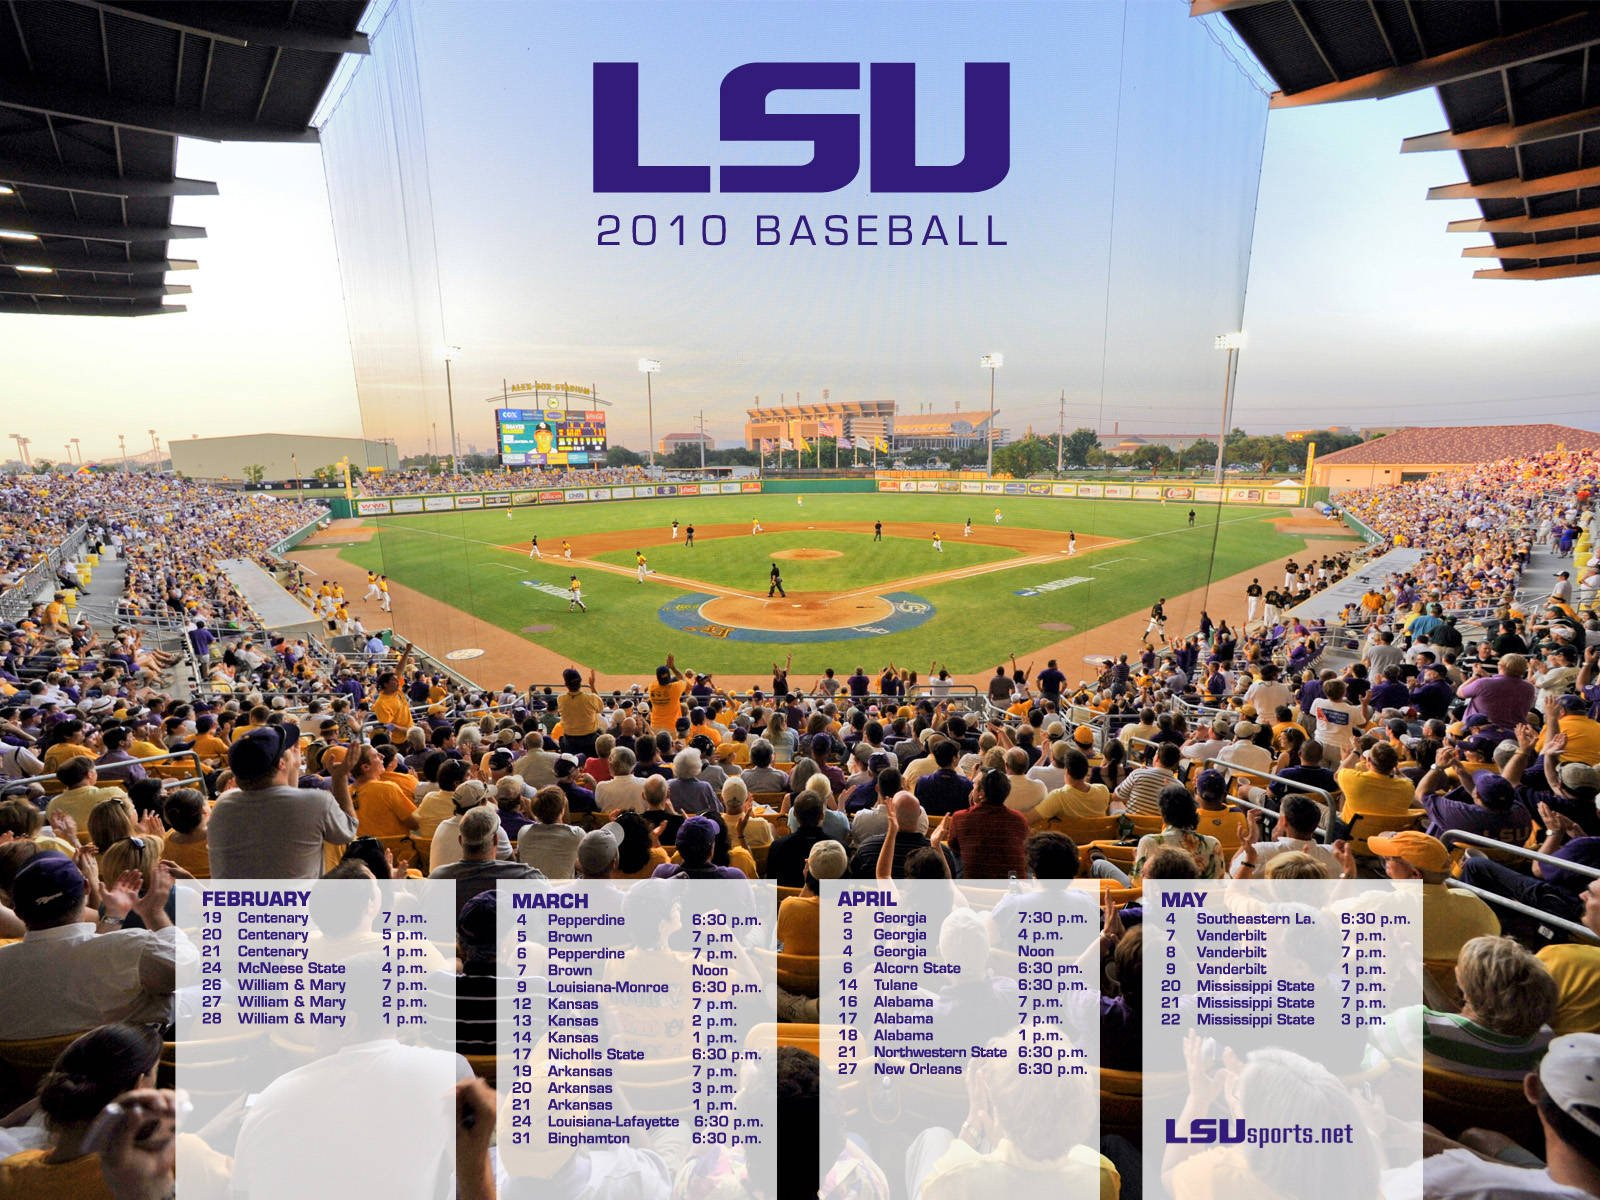 LSU Baseball Wallpaper   Request for 2015 TigerDroppingscom 1600x1200